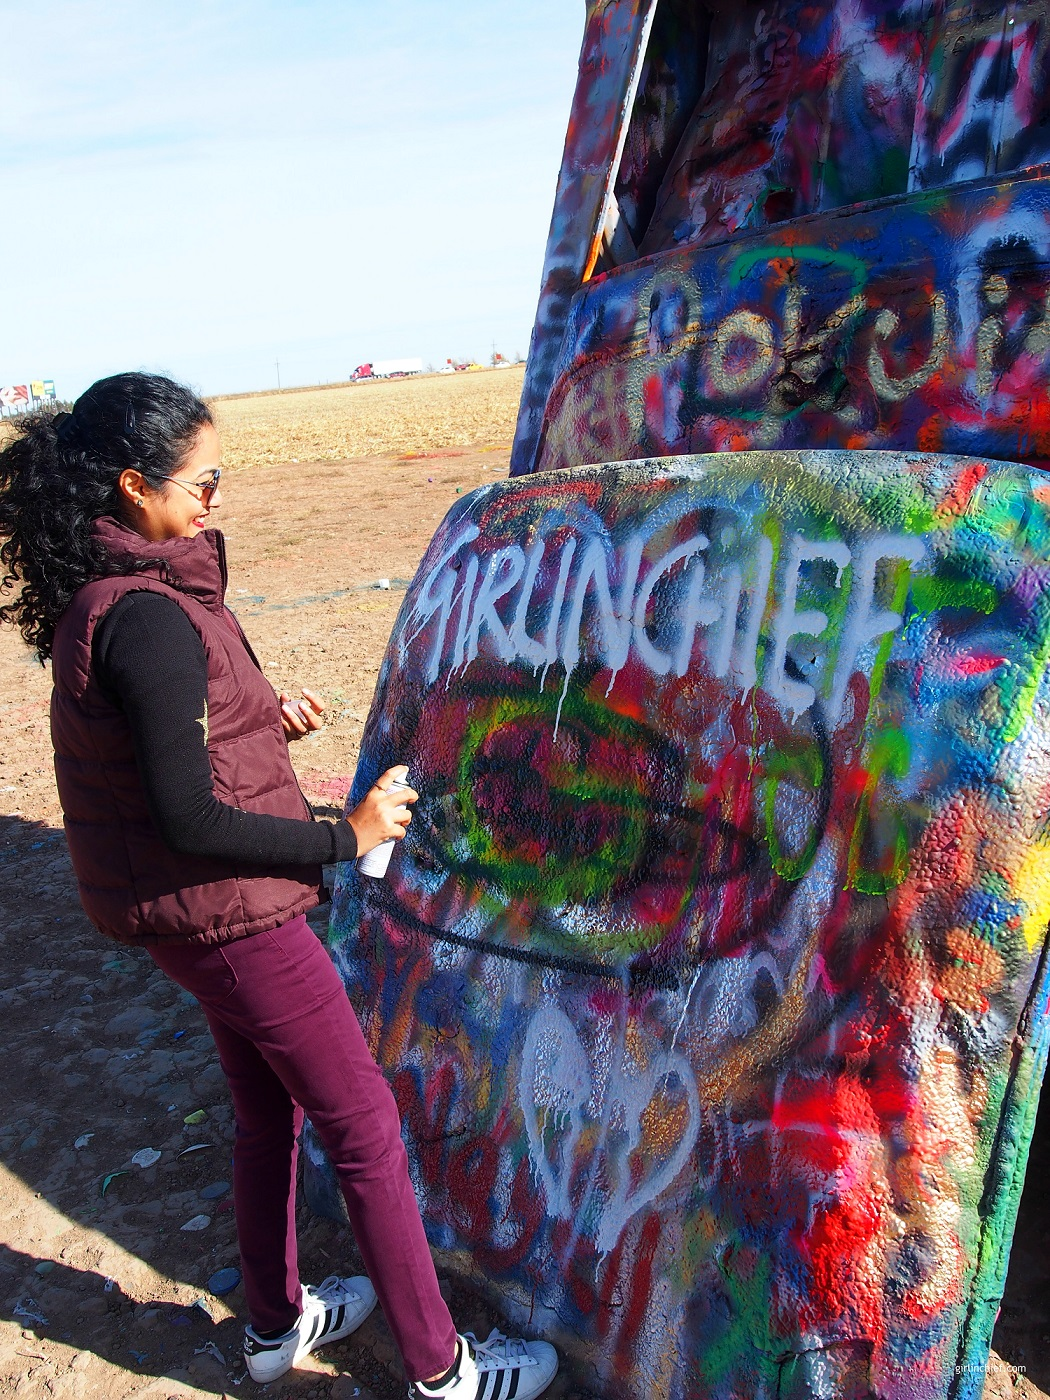 cadillac-ranch-amarillo-texas-girlinchief-3